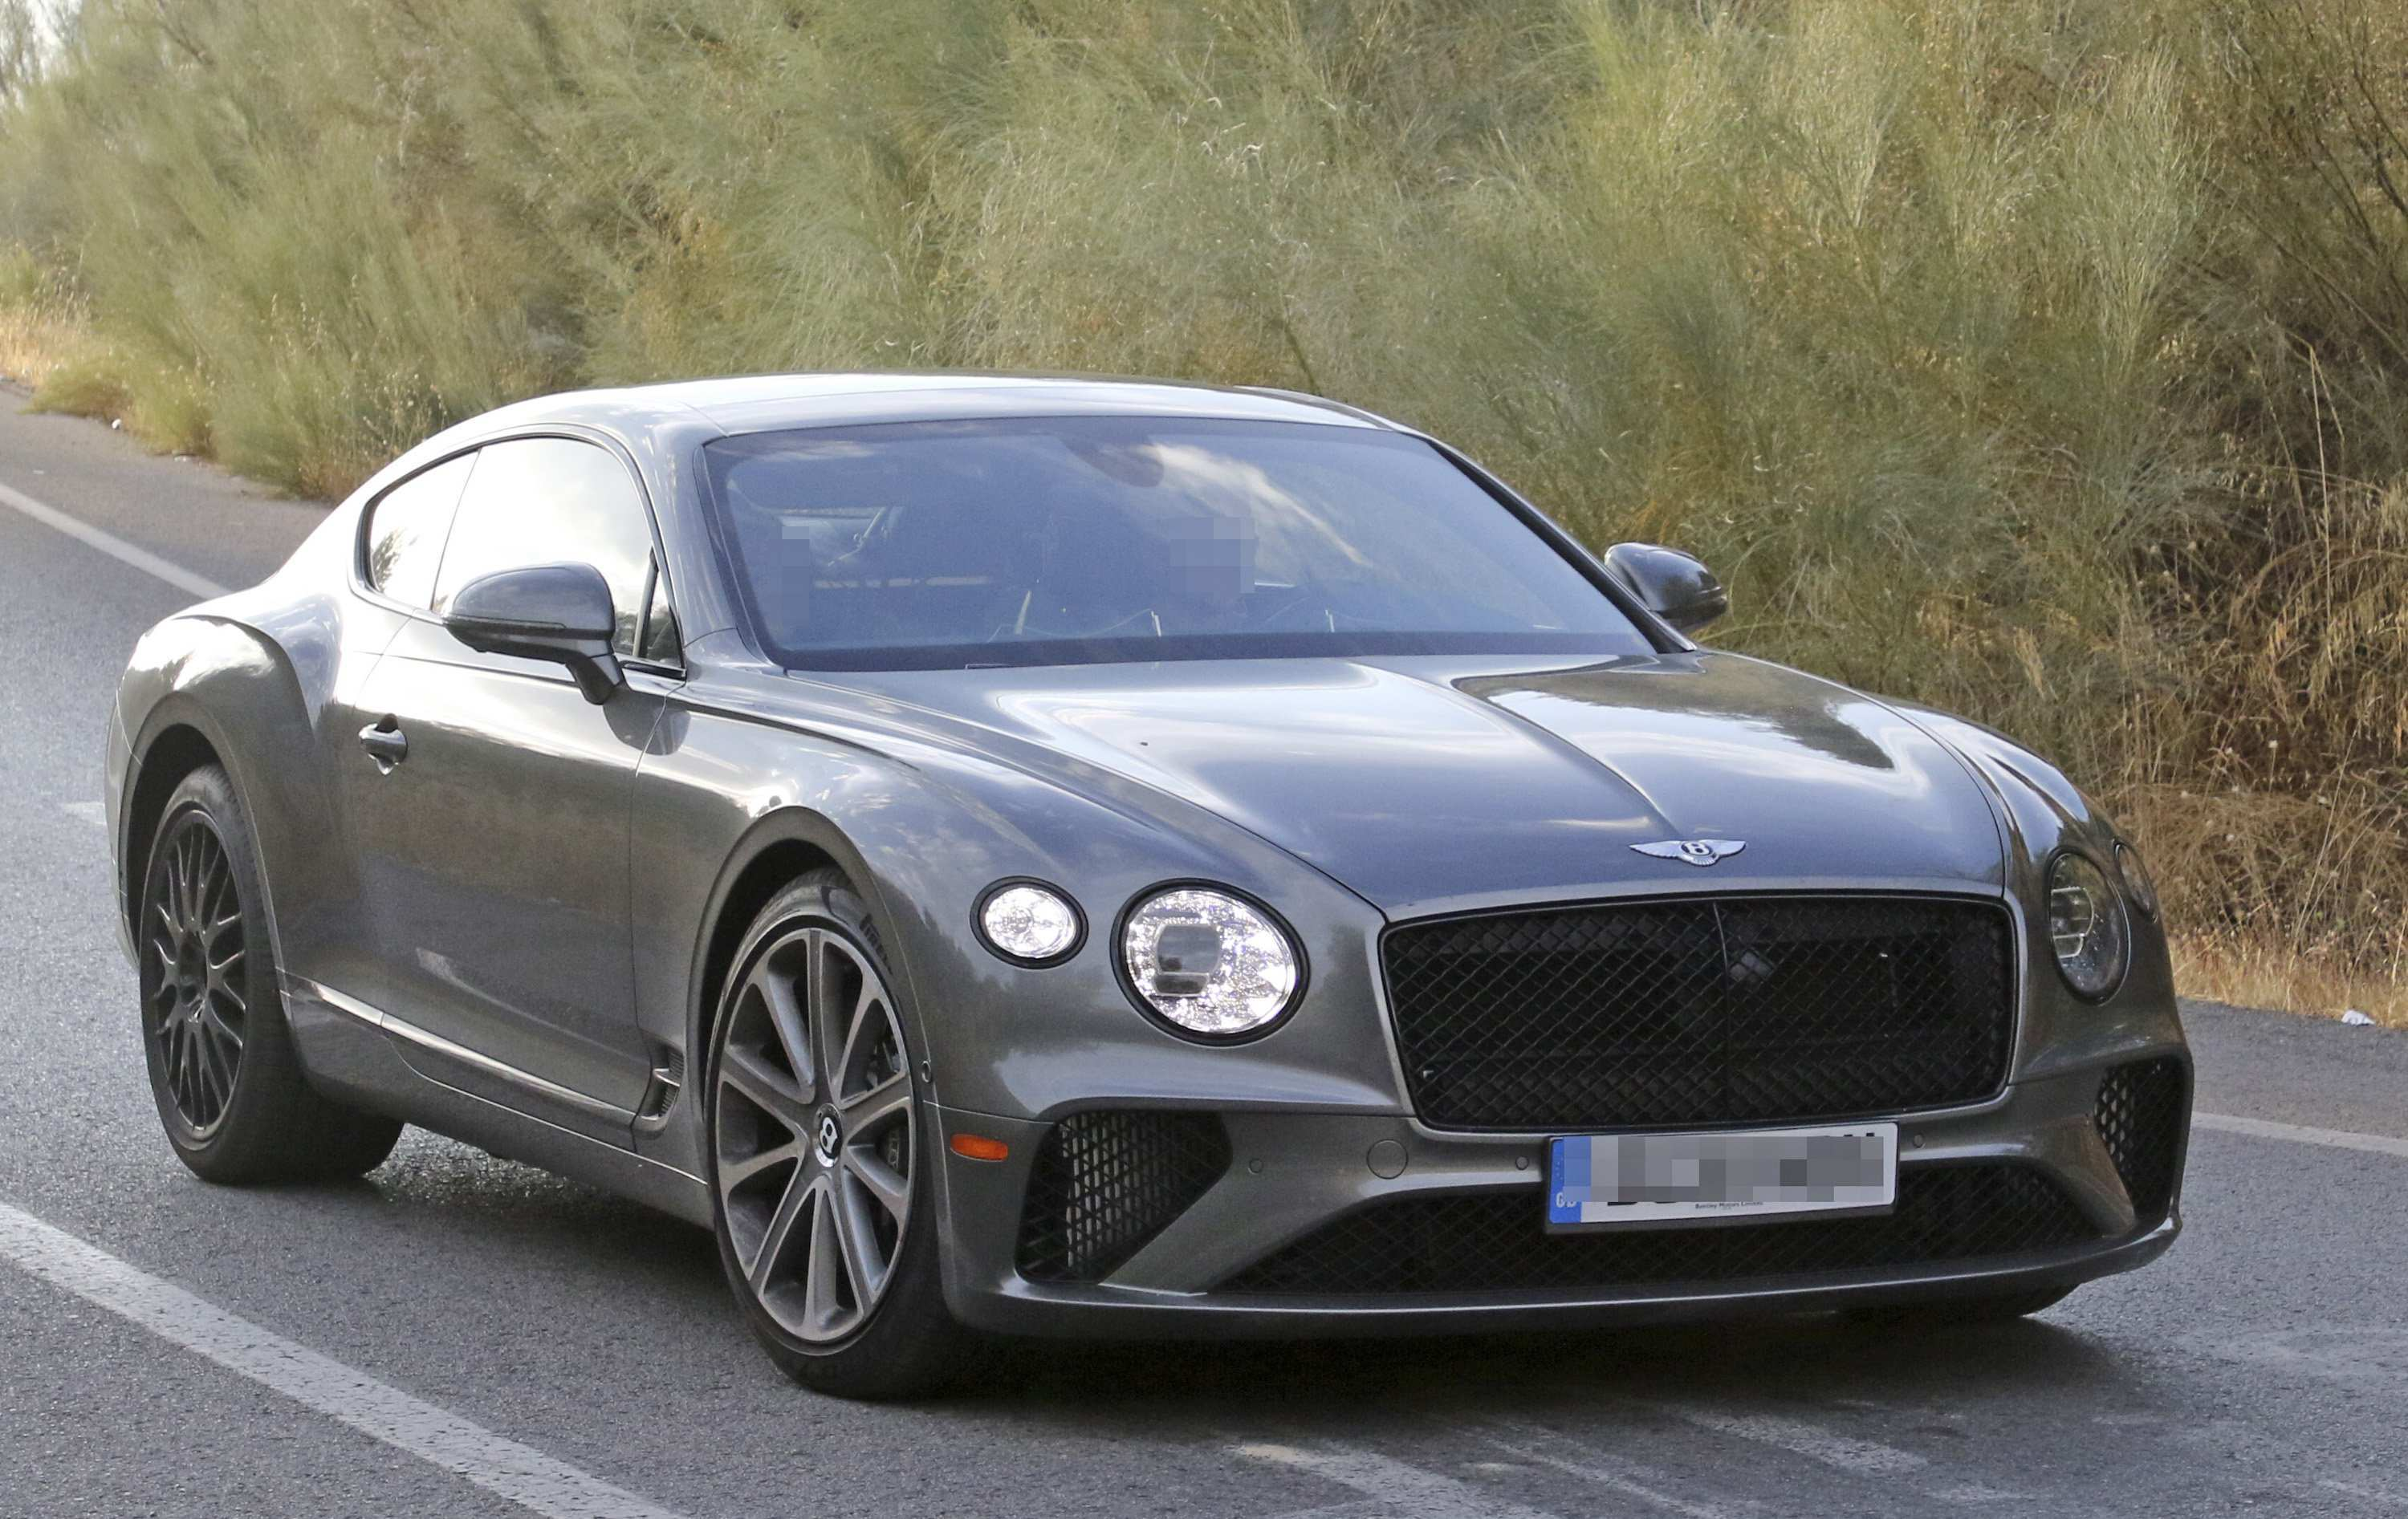 62 New 2019 Bentley Continental Gtc Engine for 2019 Bentley Continental Gtc